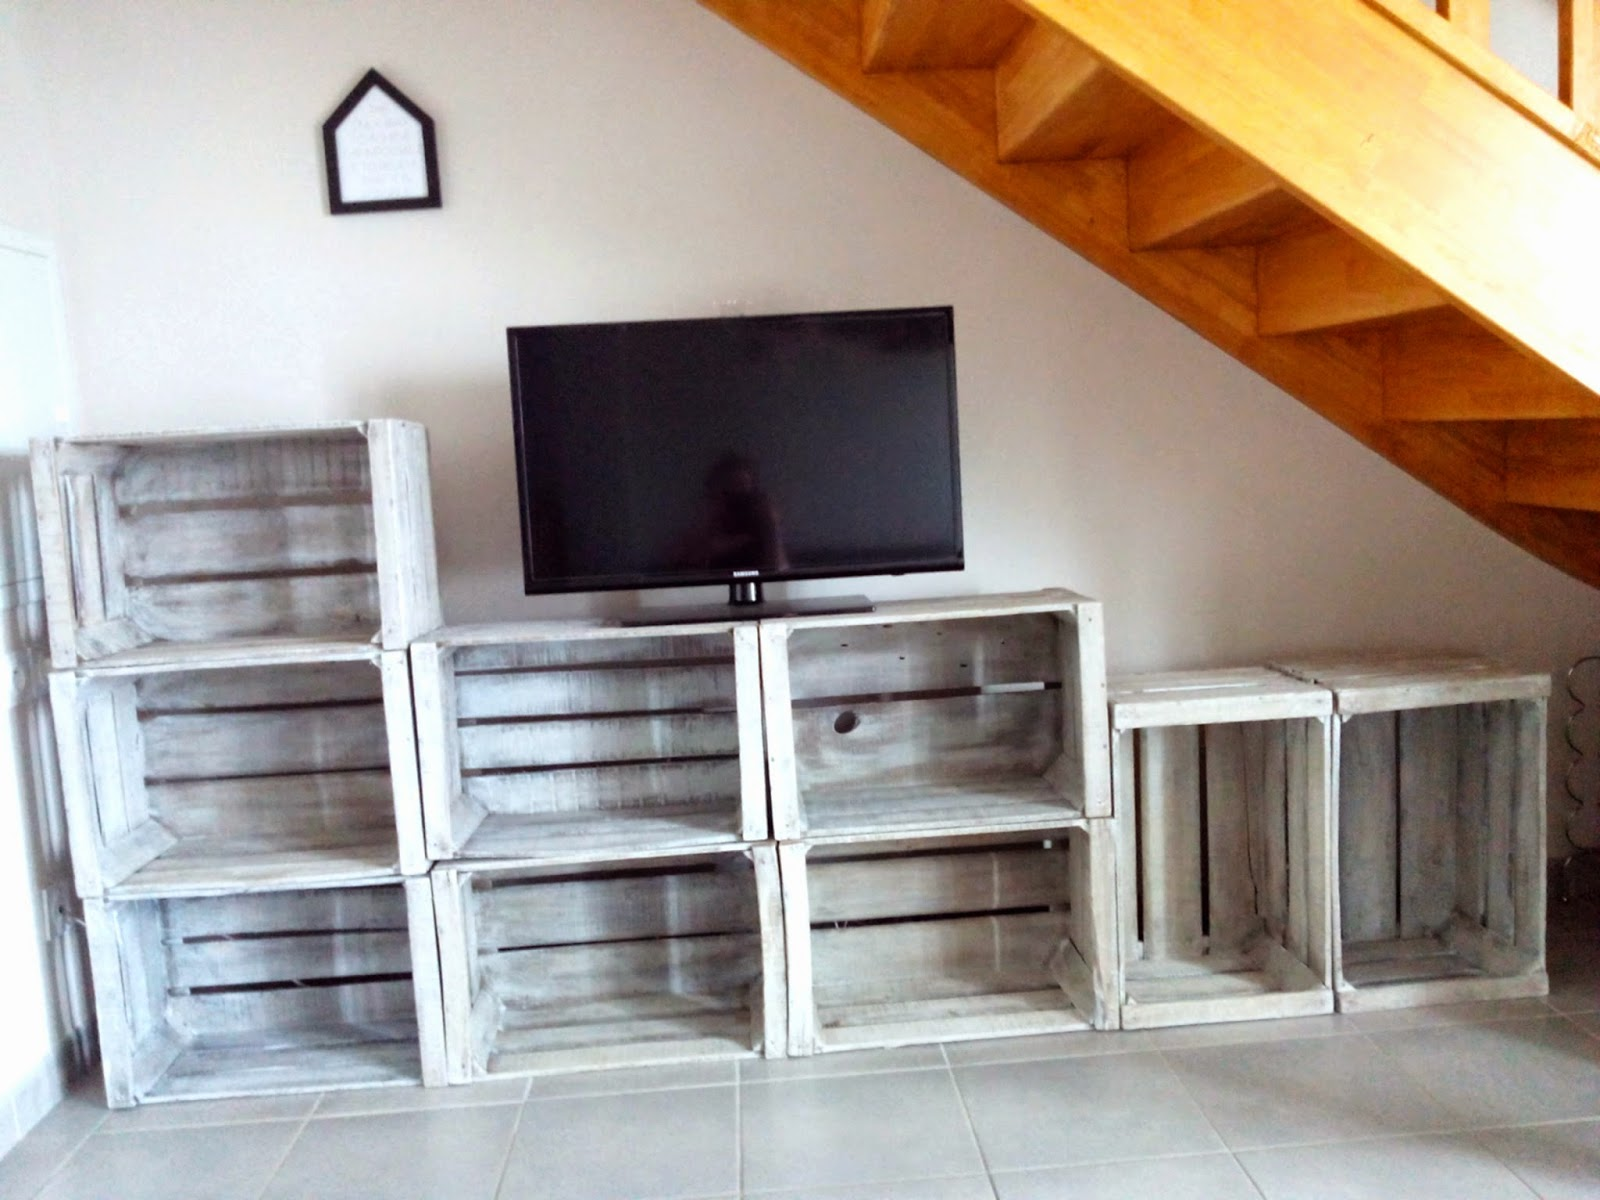 Do it yourself meuble tv avec caisses en bois bull 39 elodie for Meuble tv avec etagere